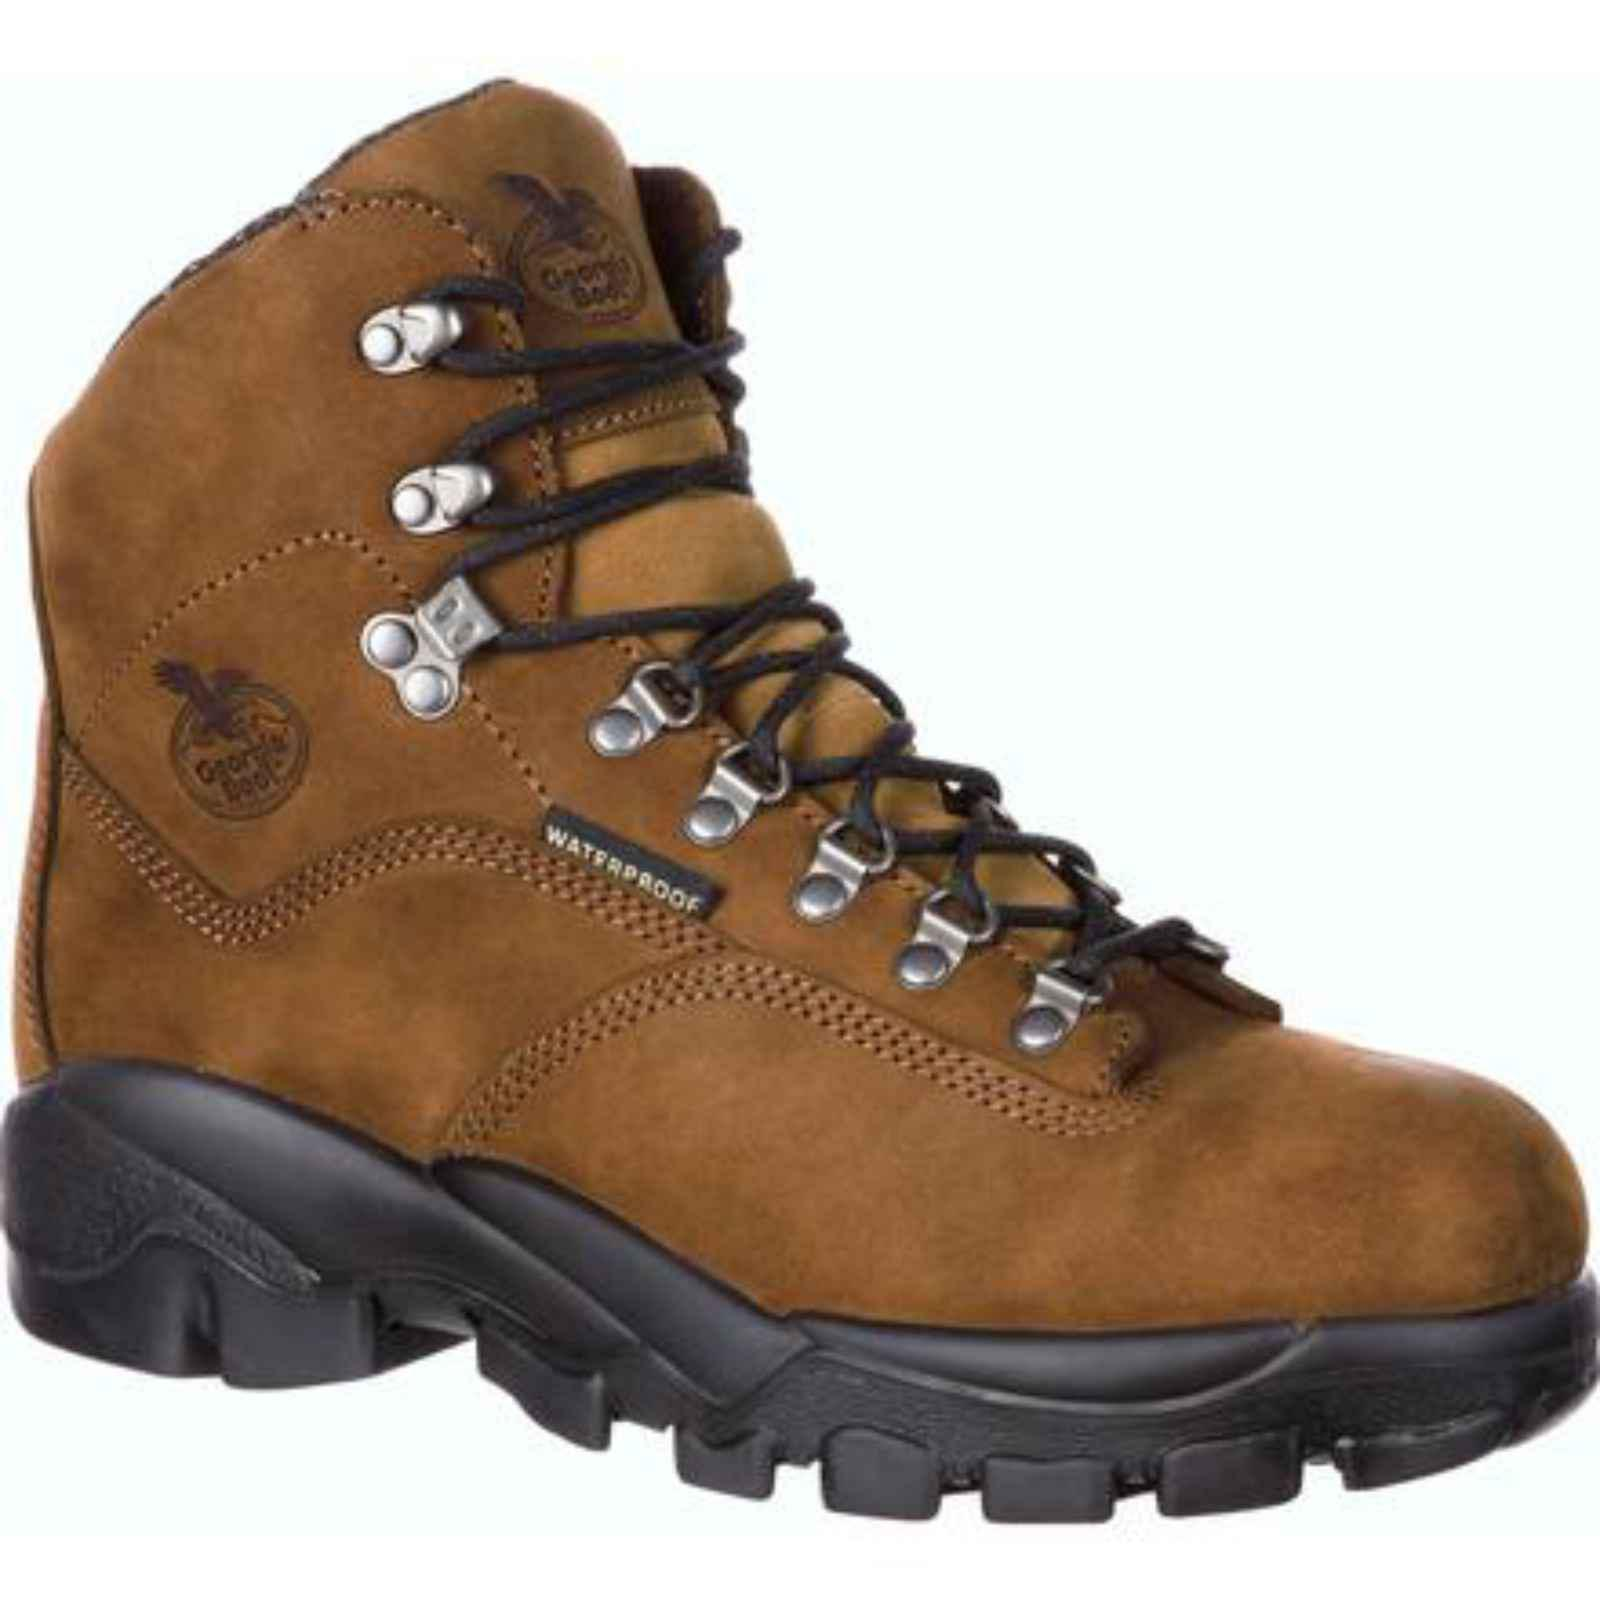 Men's Georgia Boot GB00125 Suspension System Steel Toe WP Work Boot by Georgia Boot